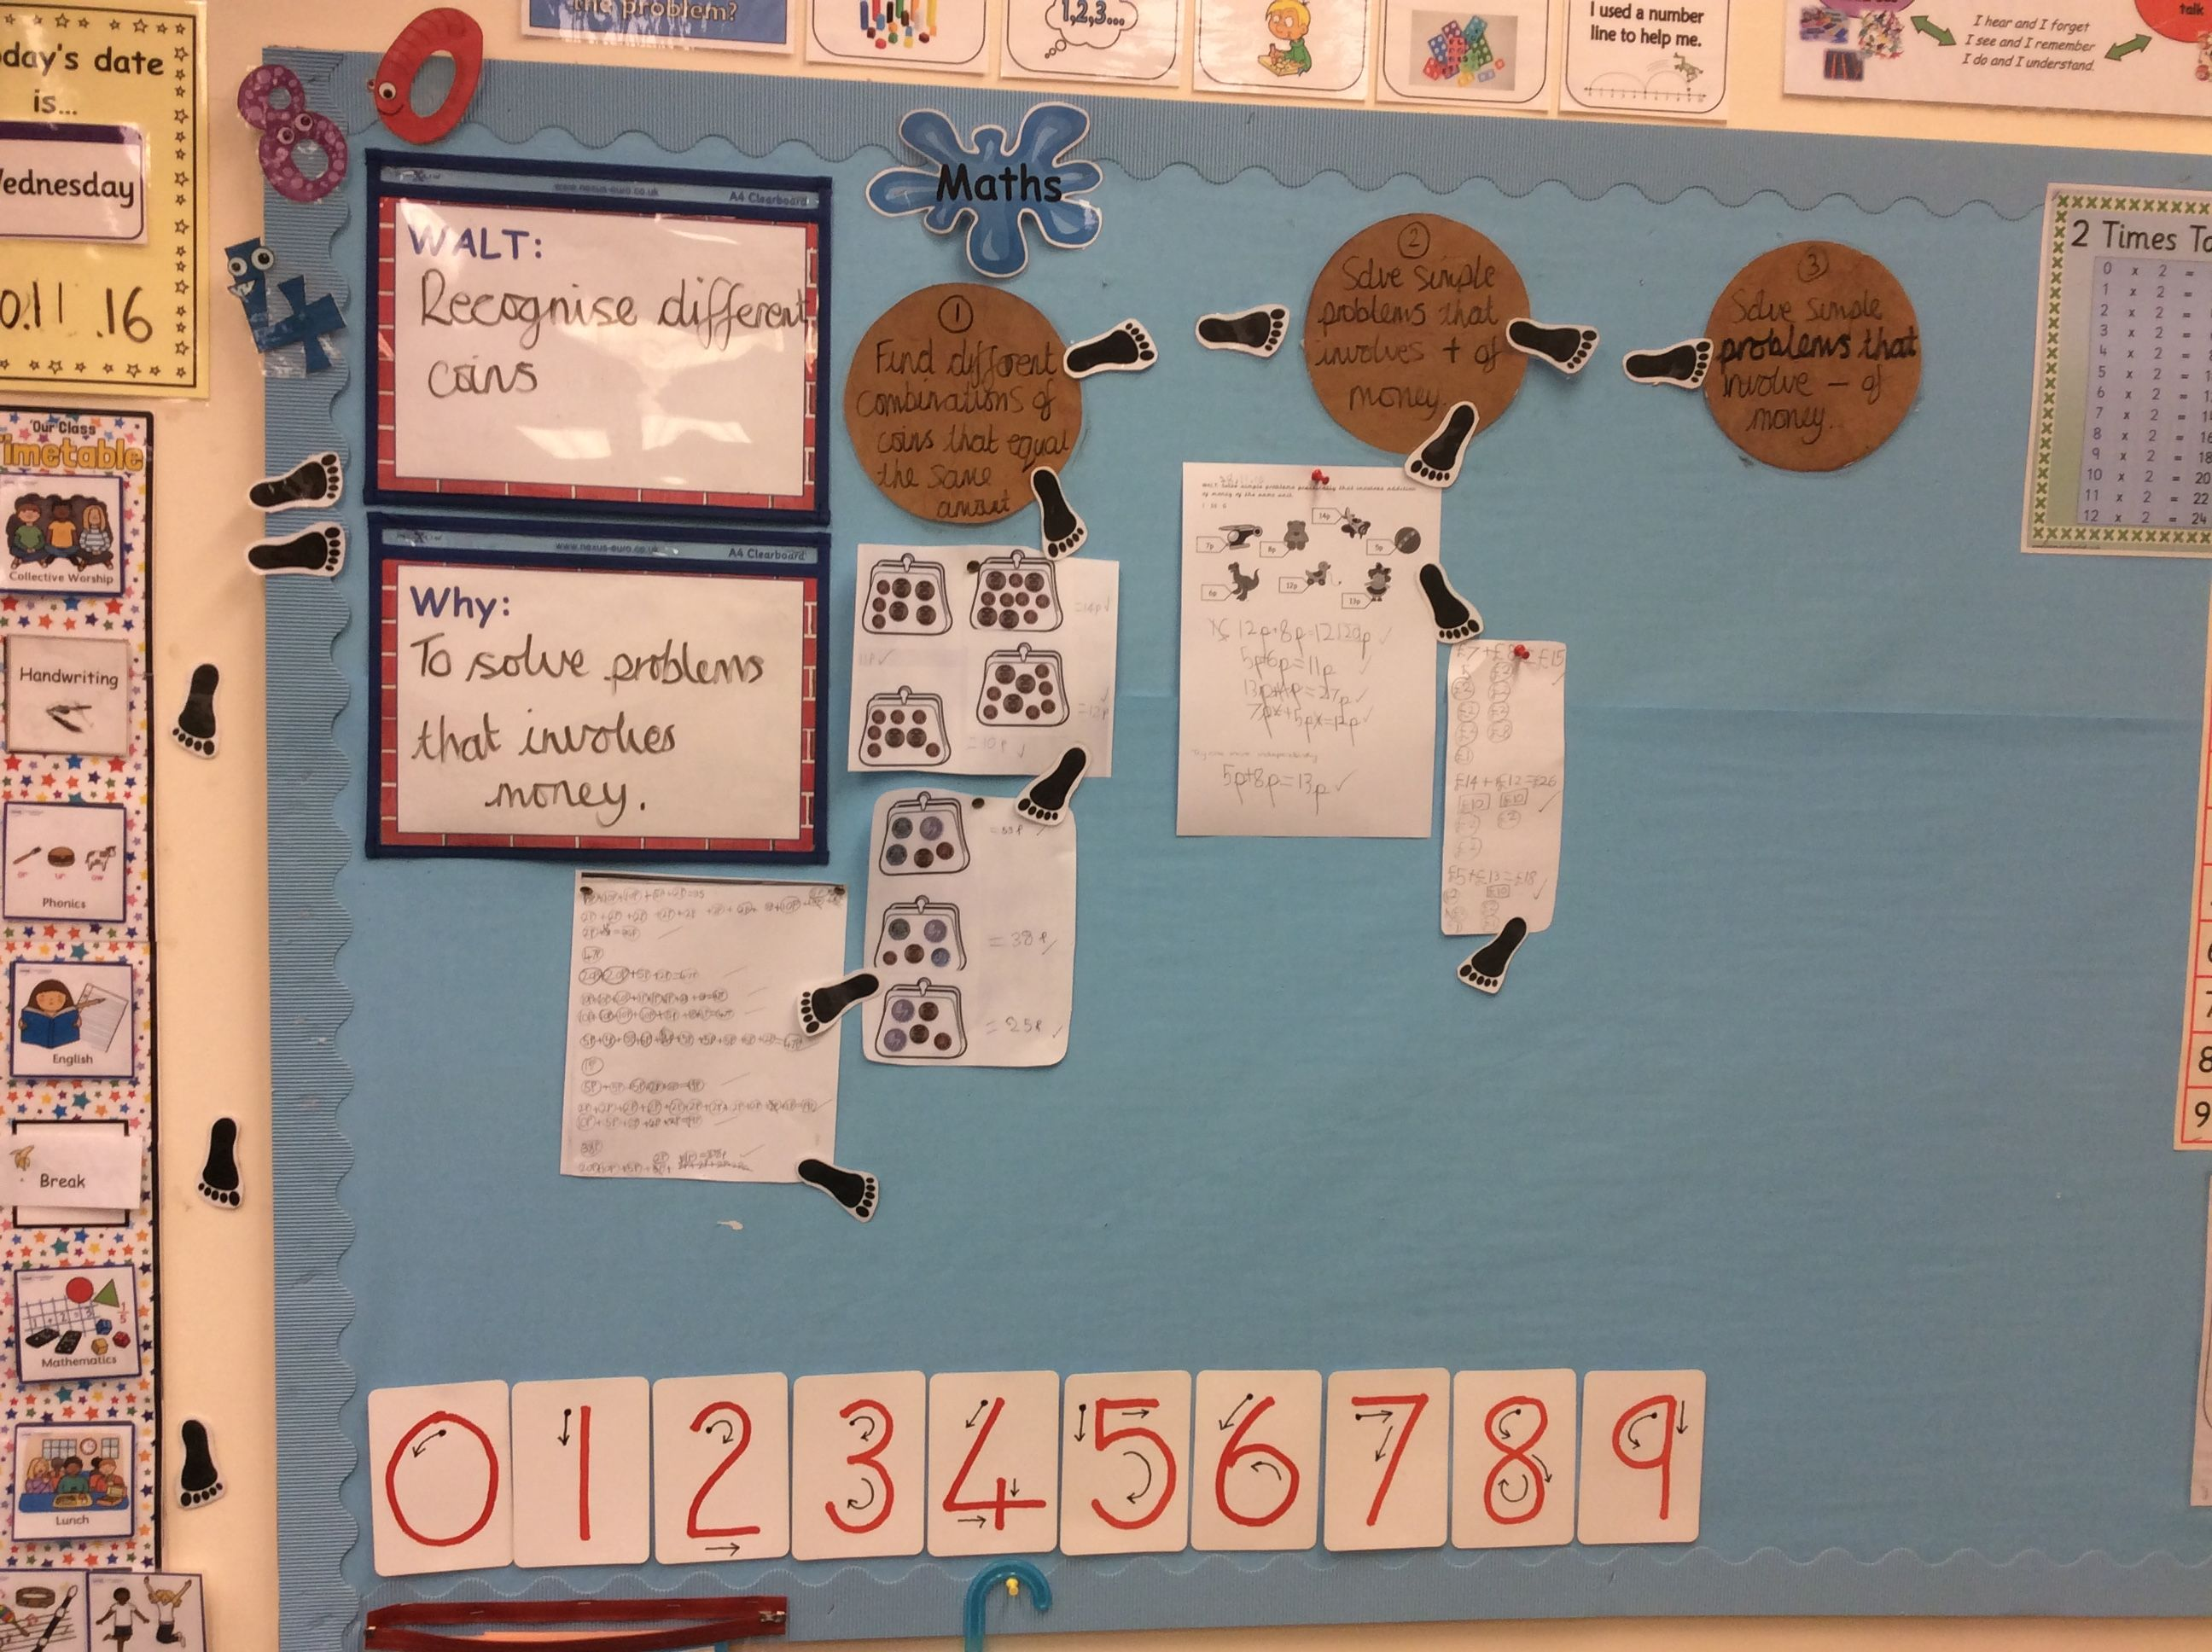 The maths display contains the learning steps to reach the WALT, which contains the main lesson objective. Children's work is also display once they have completed that step. I like that it also includes why they are learning this as it shows the children how they can apply this in everyday life. The display also demonstrates how to form letters which would be beneficial to many children and I feel this would be useful to be displayed in all ks1 and eyfs classrooms.